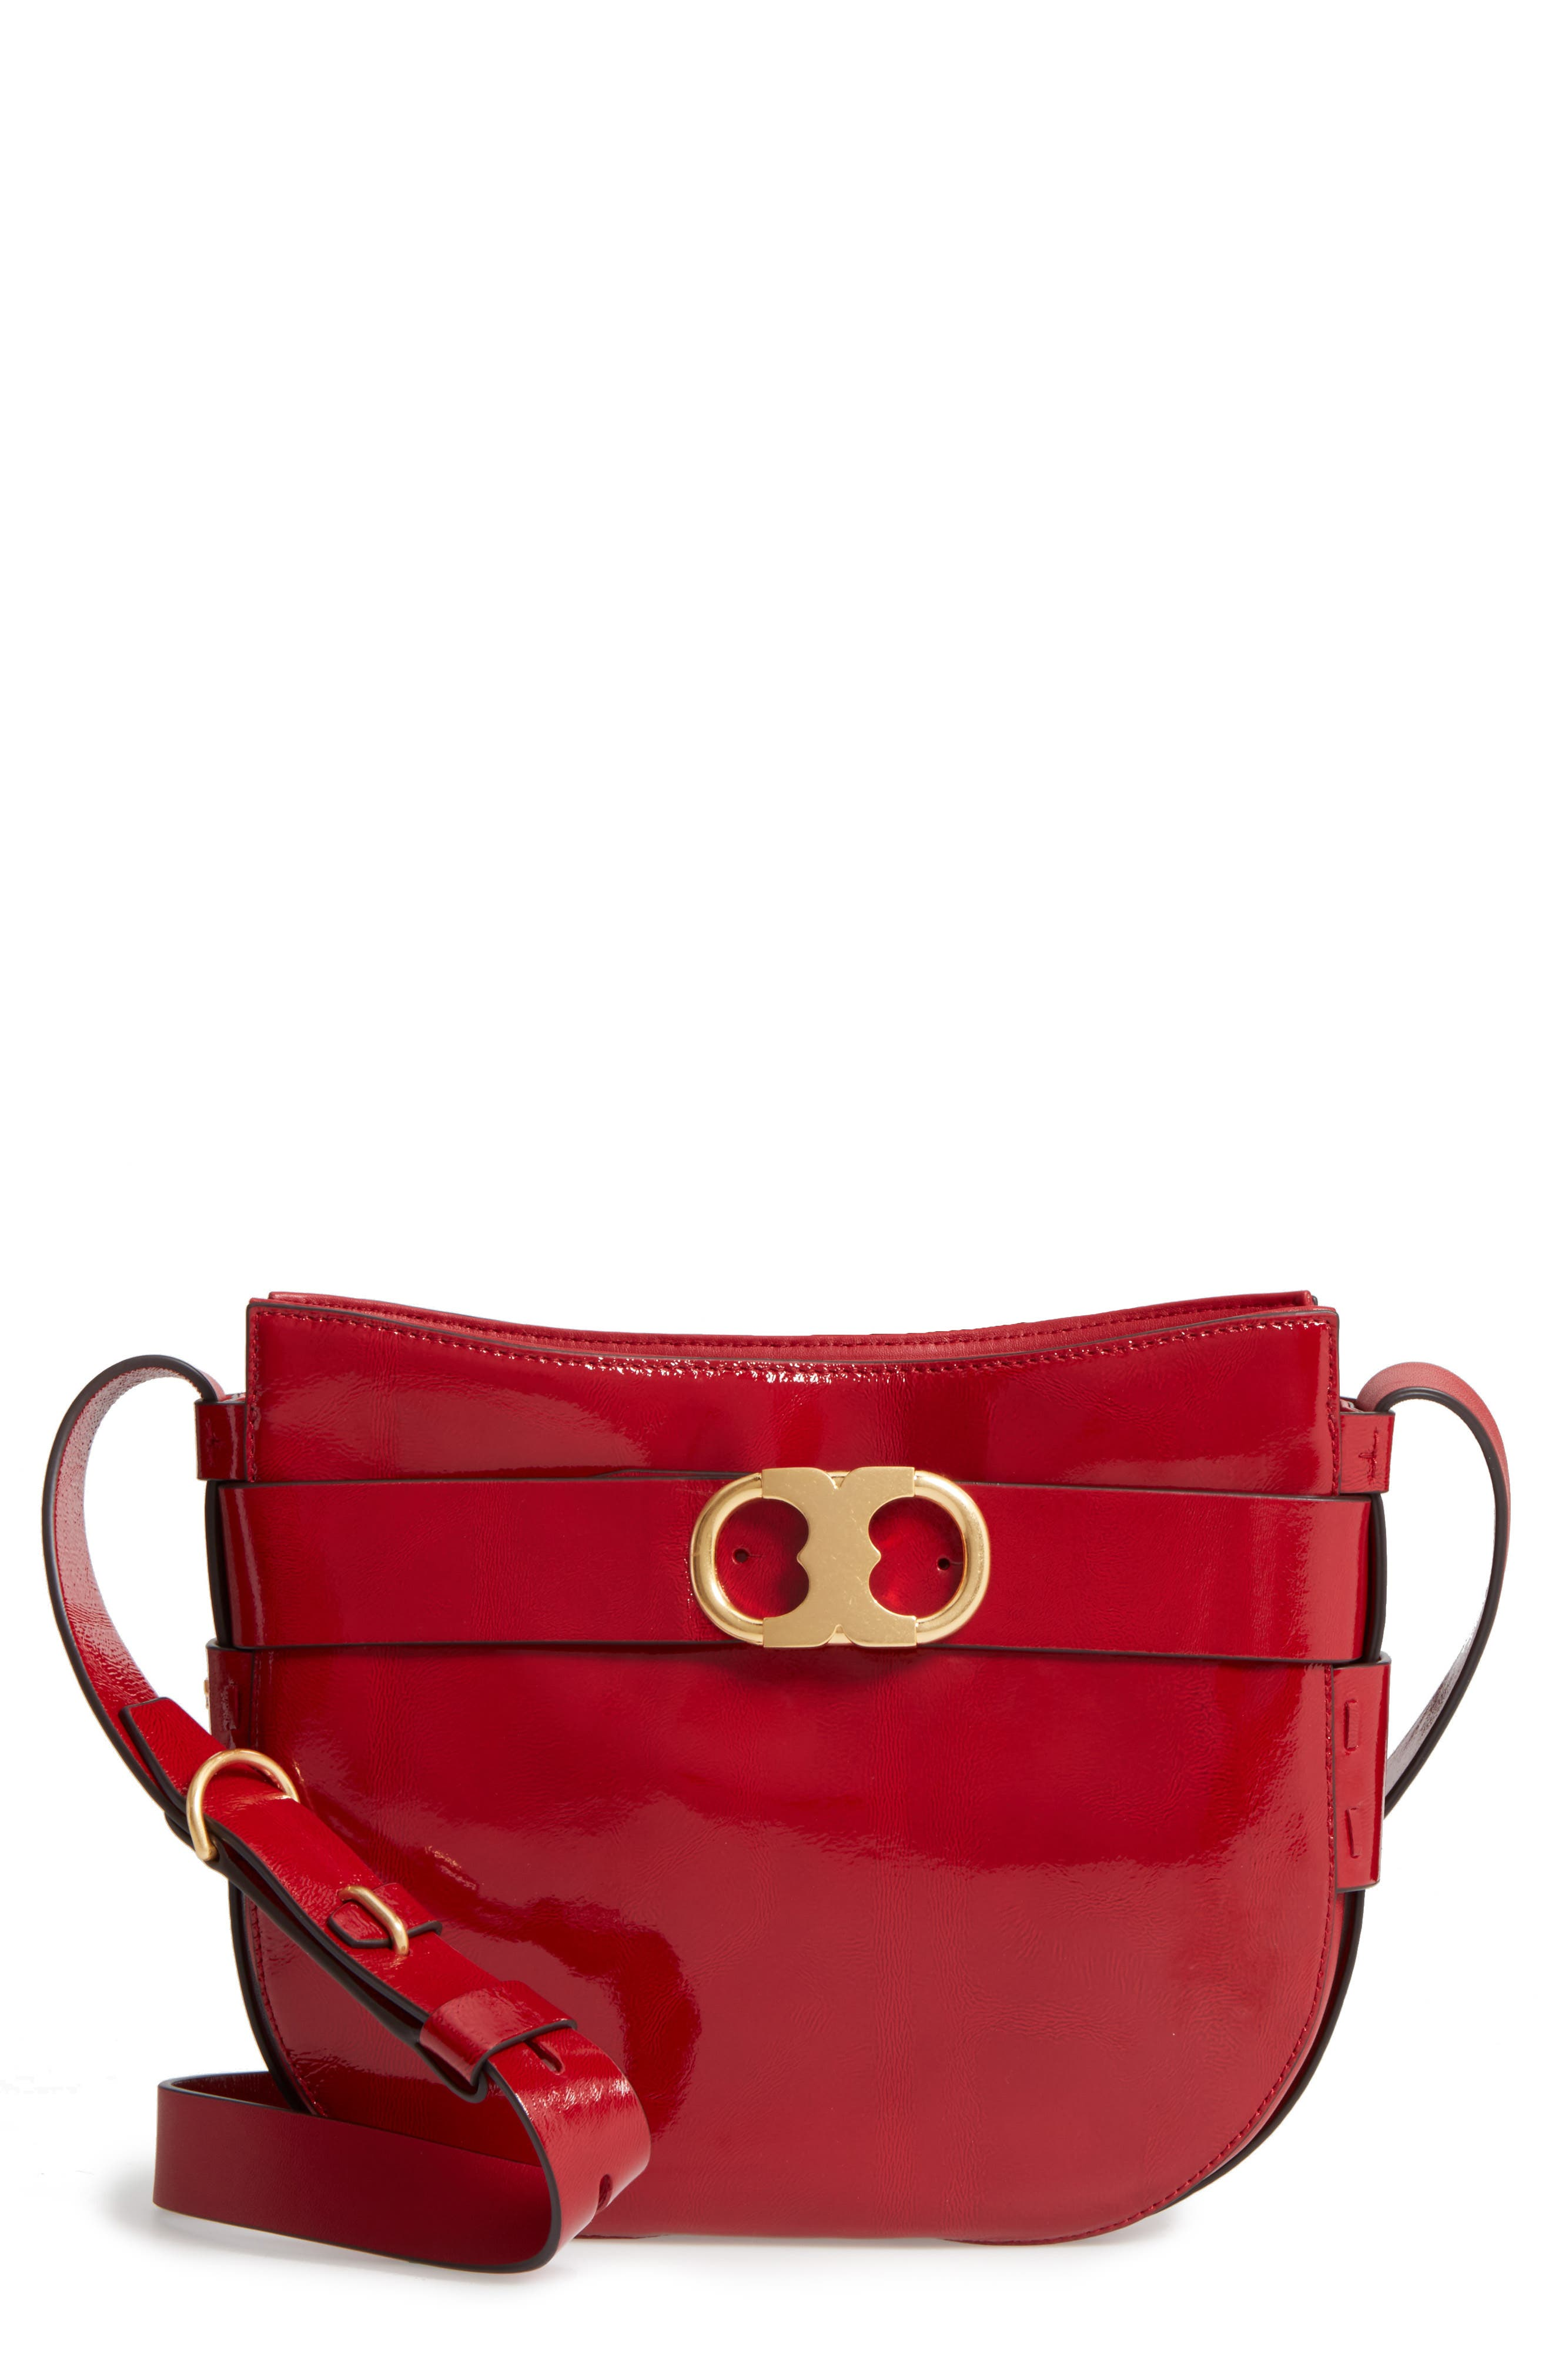 Main Image - Tory Burch Gemini Link Patent Leather Crossbody Bag